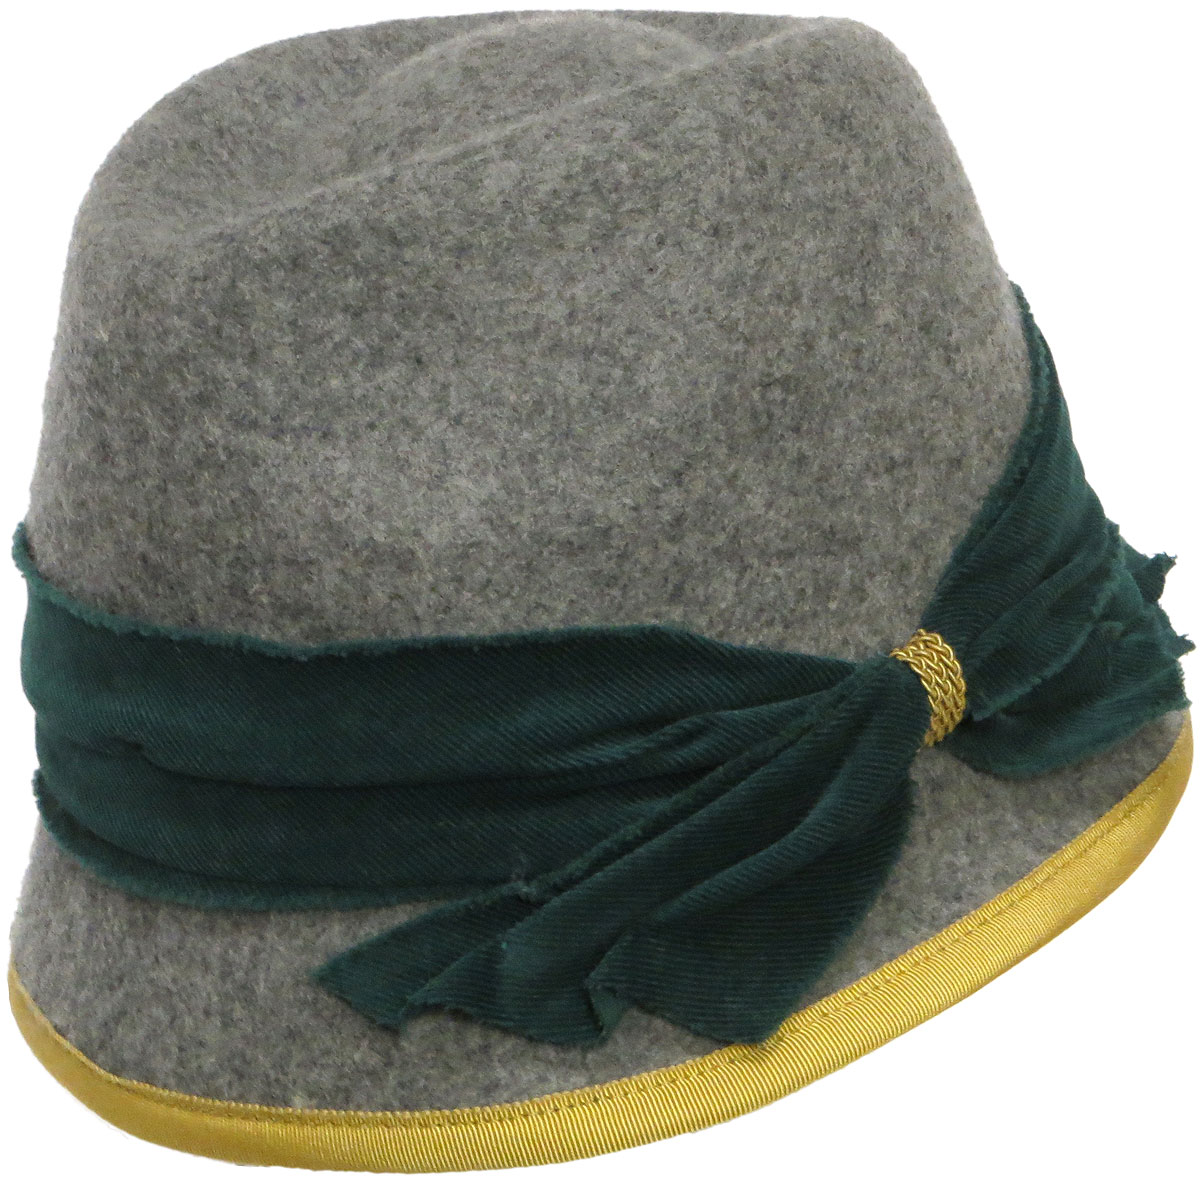 Felt Hat